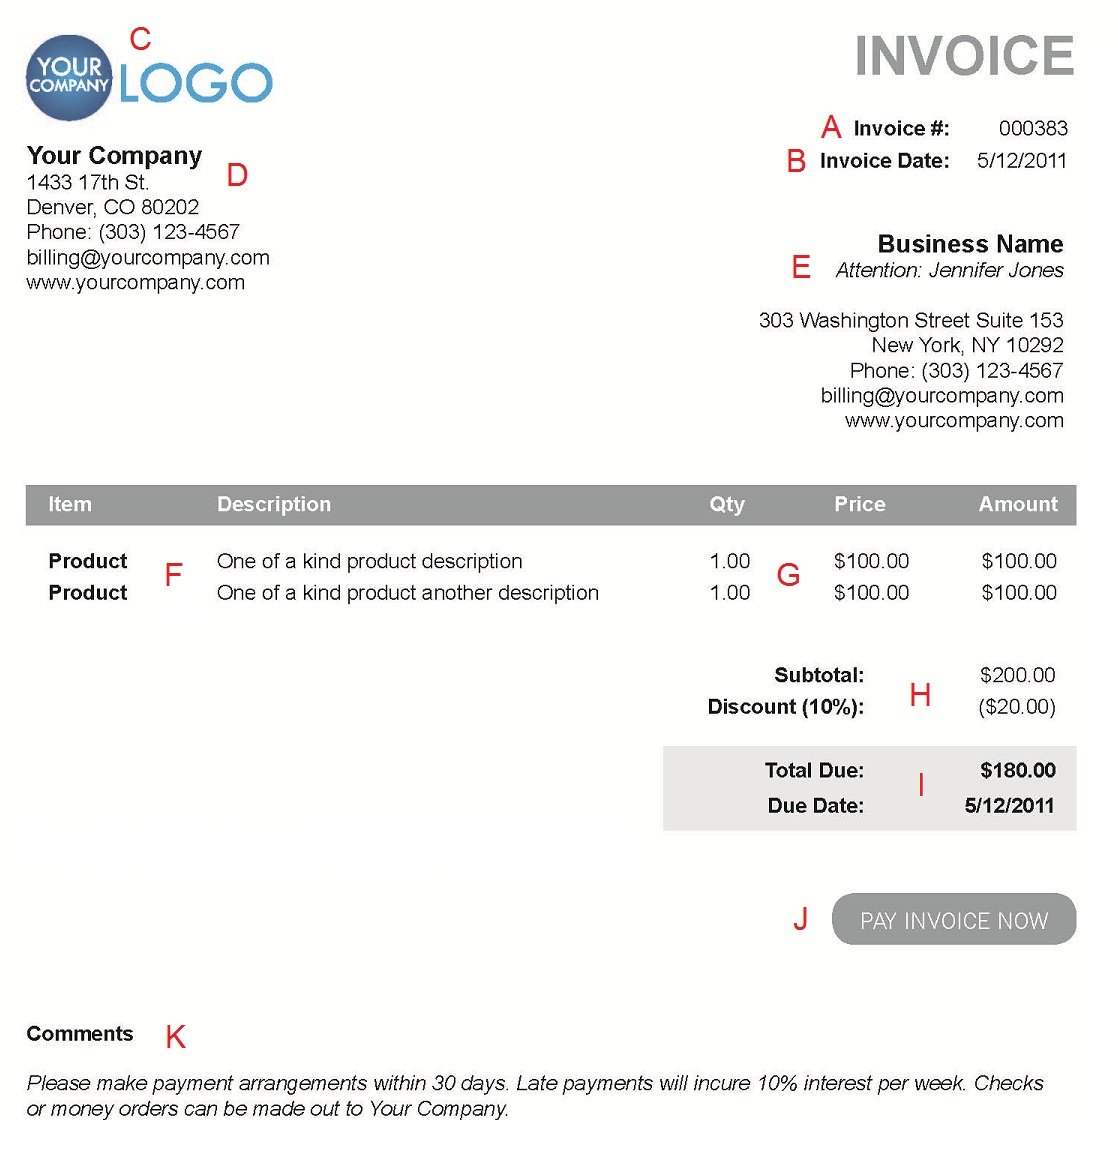 Shopdesignsus  Remarkable The  Different Sections Of An Electronic Payment Invoice With Foxy A  With Extraordinary Process The Invoice Also Free Work Invoice In Addition Commercial Invoice Proforma Invoice And Free Invoice Software For Mac As Well As Invoice Reconciliation Template Additionally Invoice Template Samples From Paysimplecom With Shopdesignsus  Foxy The  Different Sections Of An Electronic Payment Invoice With Extraordinary A  And Remarkable Process The Invoice Also Free Work Invoice In Addition Commercial Invoice Proforma Invoice From Paysimplecom